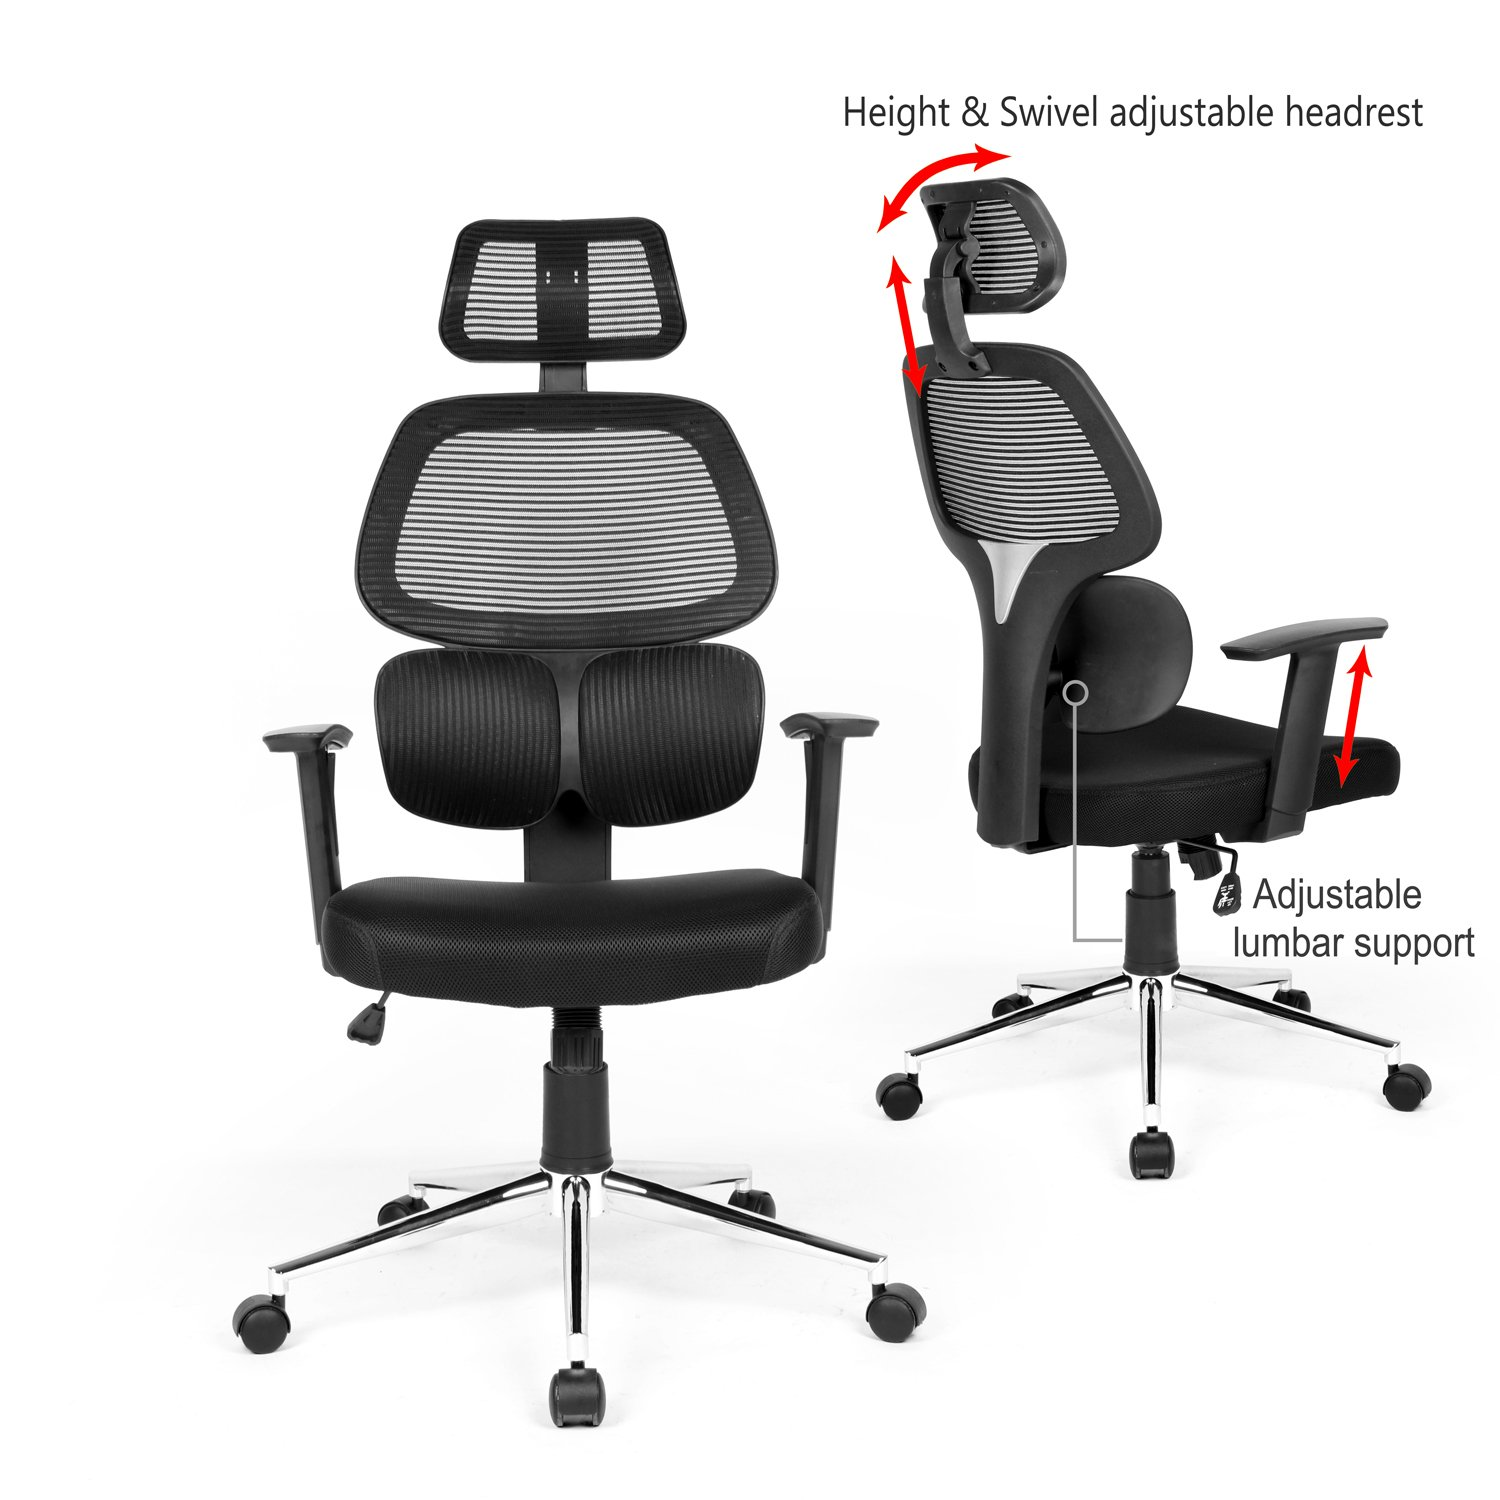 Cheap Ergonomic Office Chairs With Lumbar Support Find Ergonomic Office Chairs With Lumbar Support Deals On Line At Alibaba Com